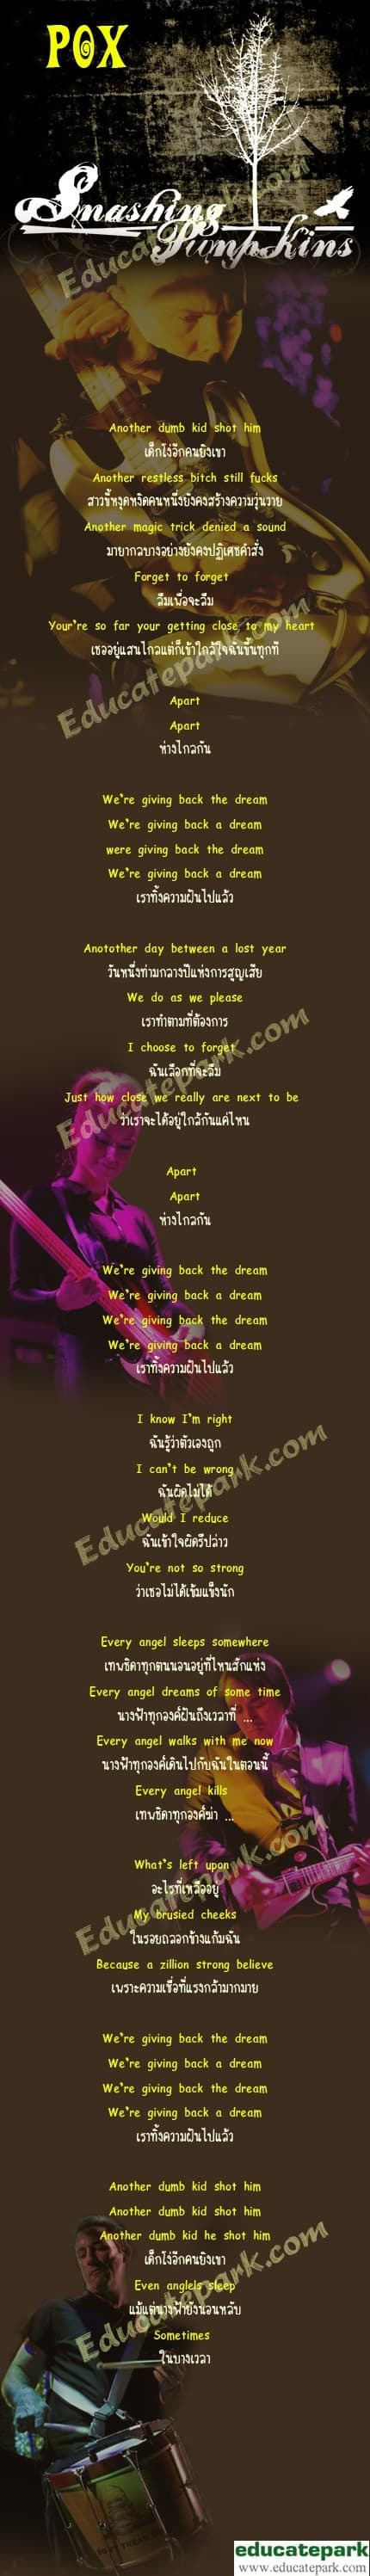 แปลเพลง Pox - The Smashing Pumpkins